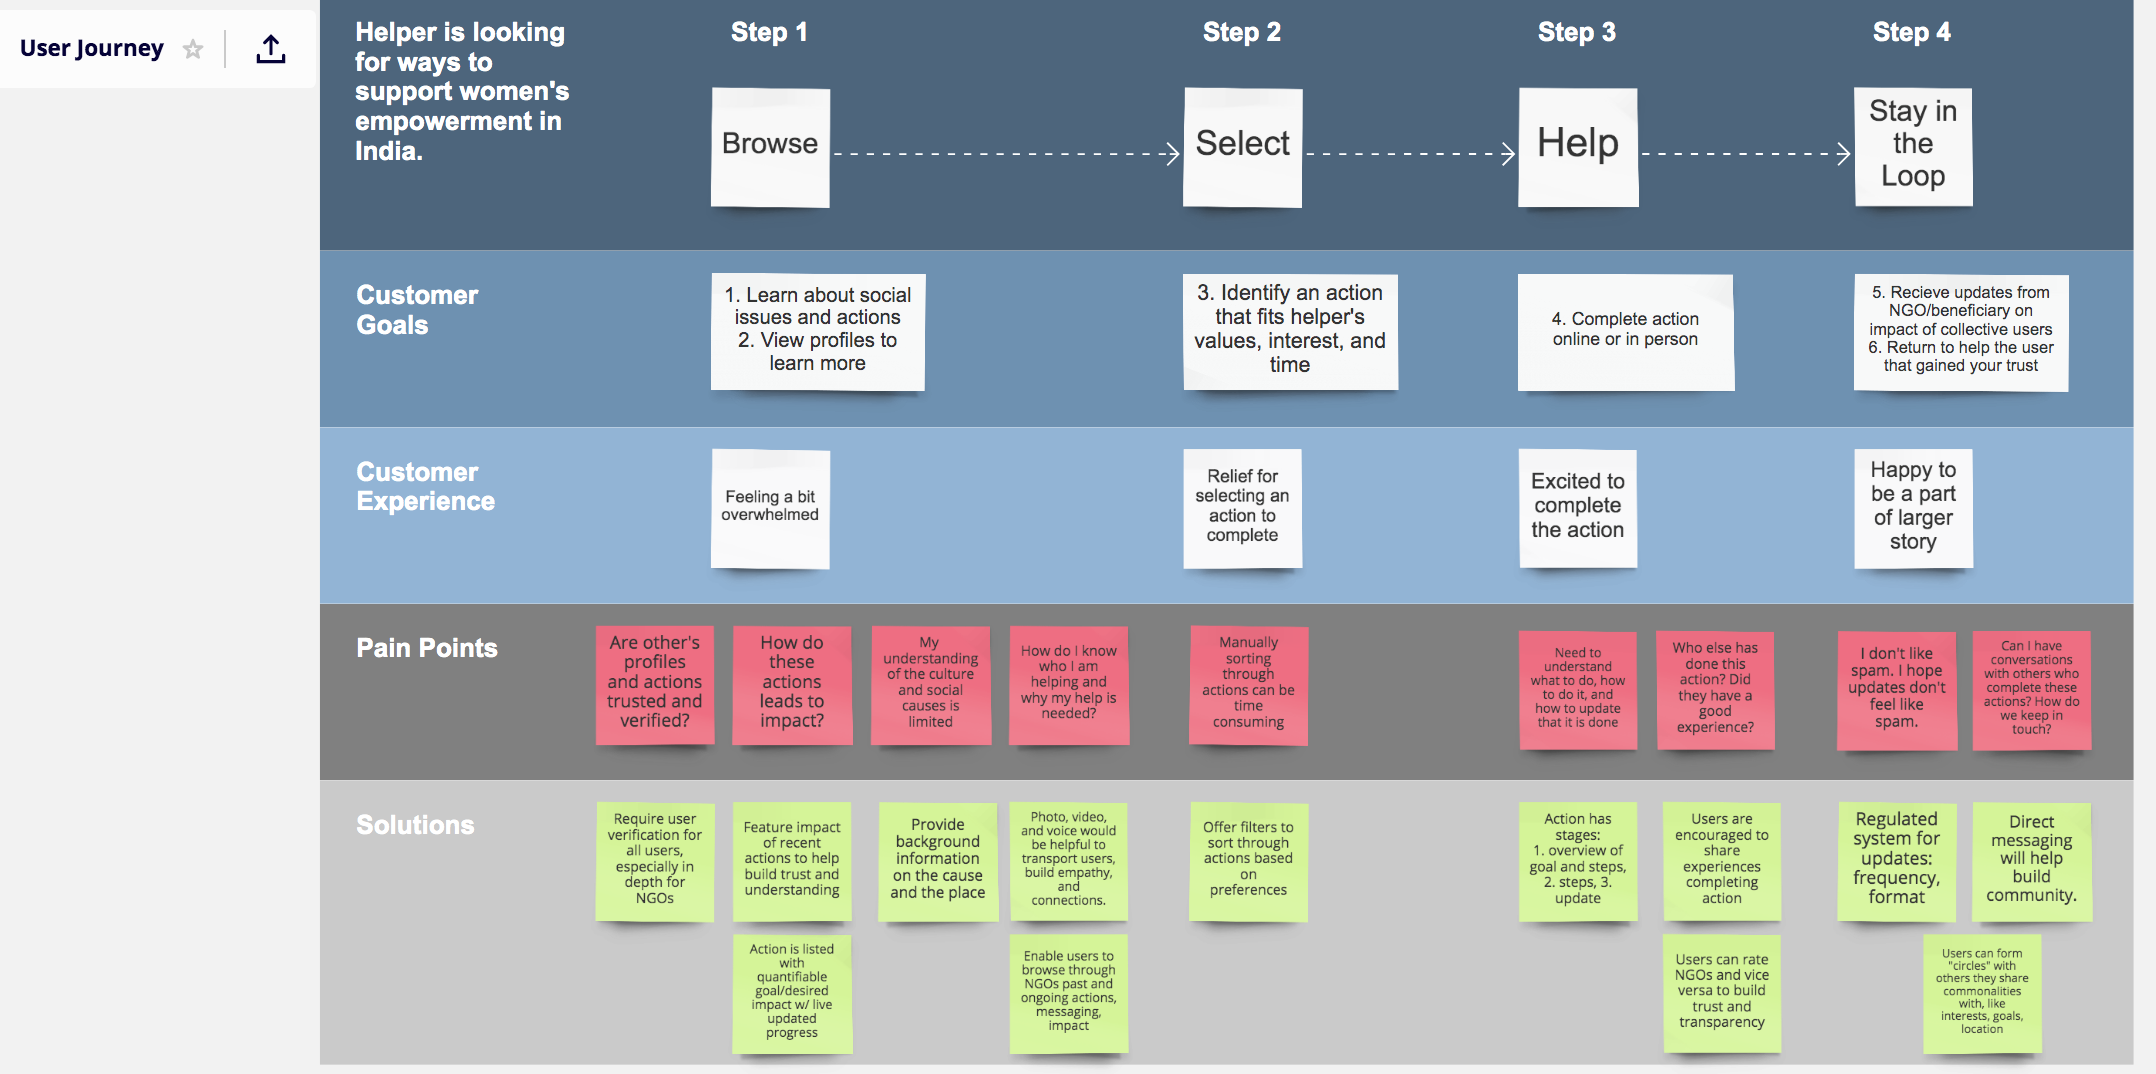 User Journey Exploration  I defined the user journeys that would need to be explored, to then prioritize scope and end-user segments that took priority. The founder then created the journeys based off of my templates and guidance.